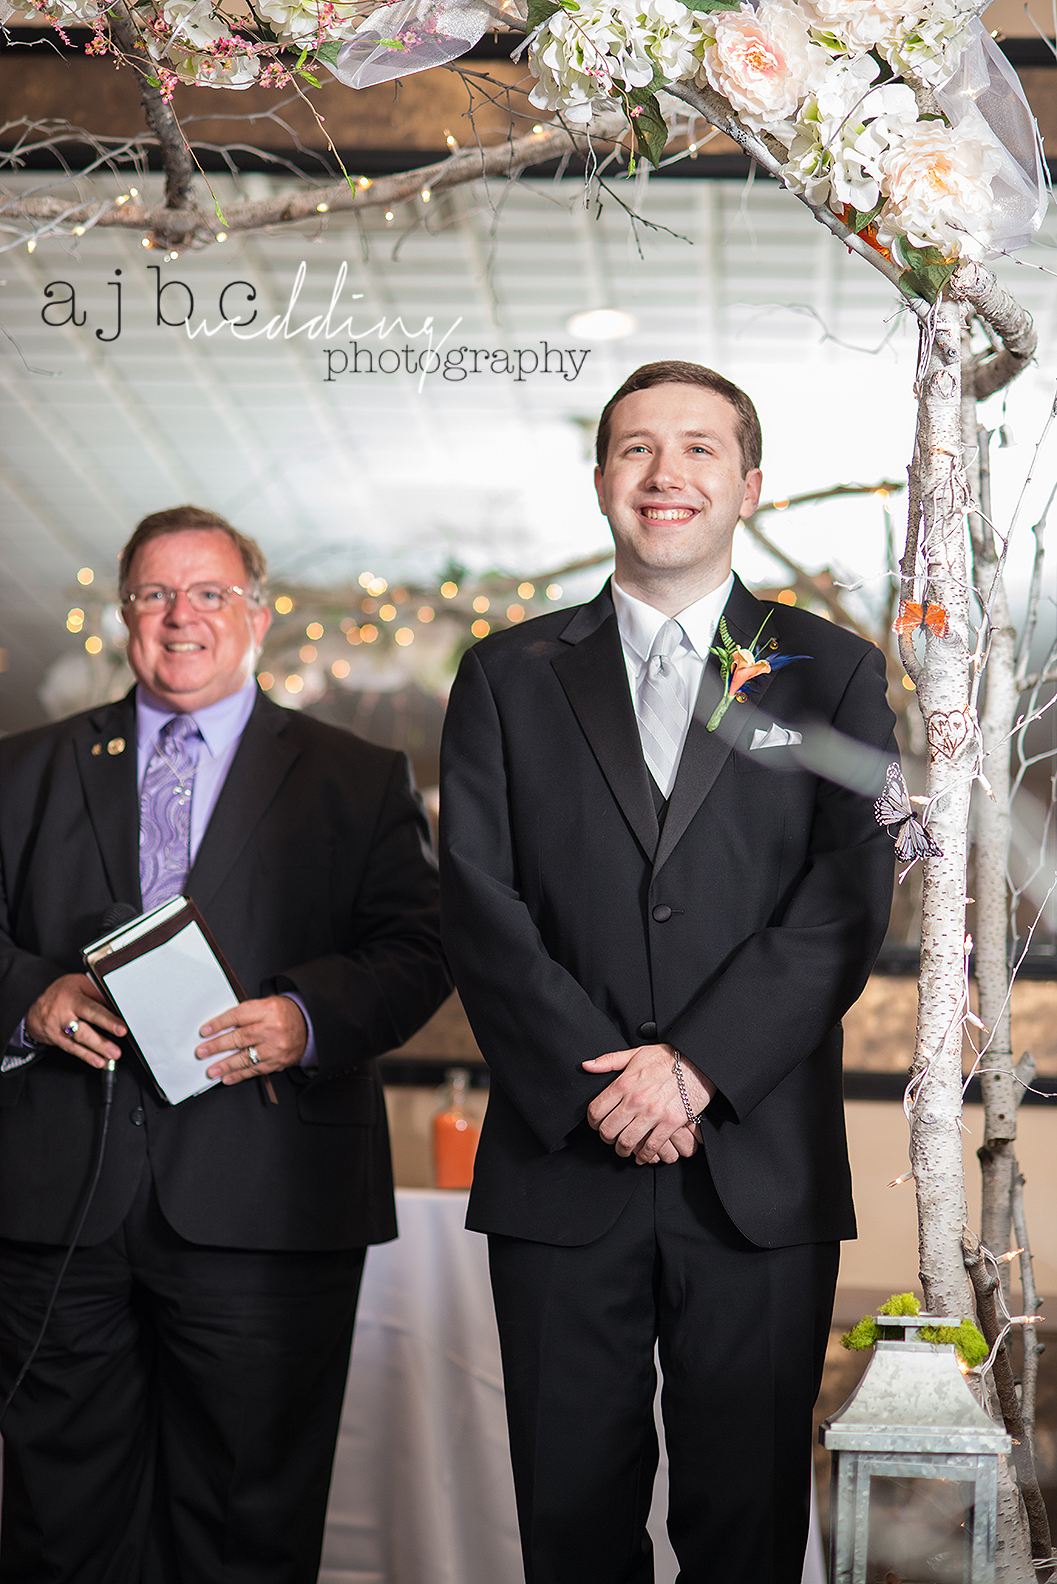 ajbcphotography-port-huron-michigan-wedding-photographer-love-bride-groom-family-michigan-wedding-photographer-walking-down-the-isle.jpg